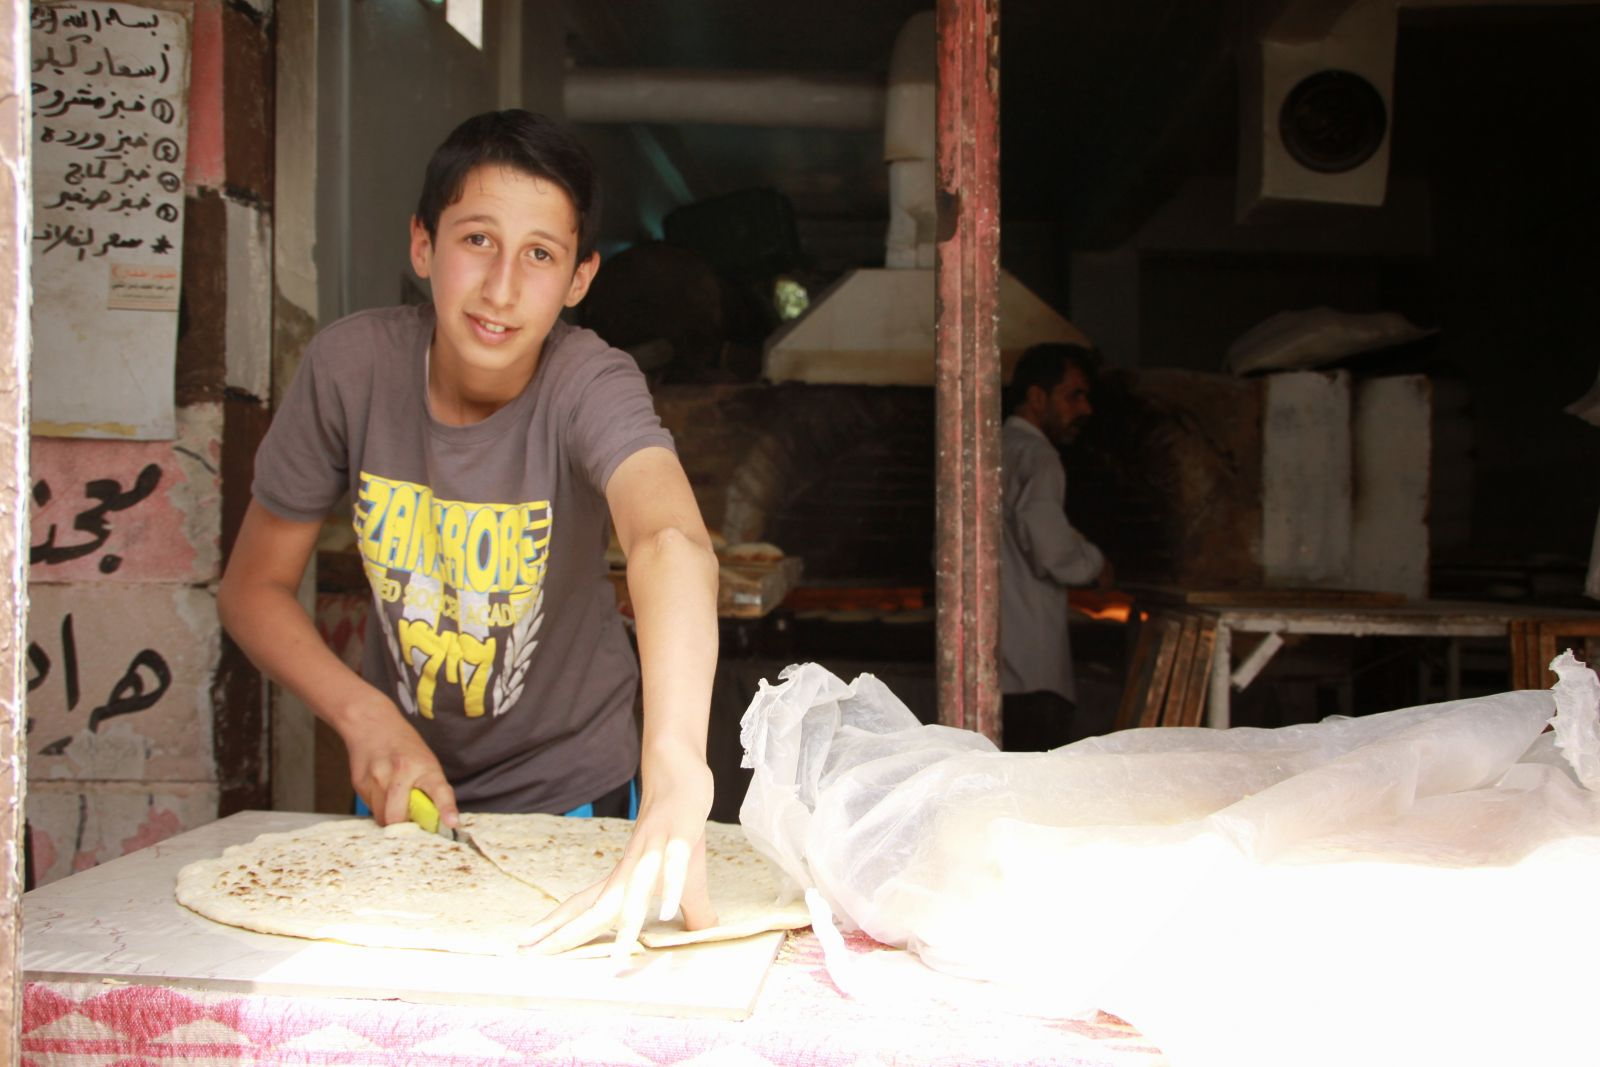 Hamdan, 14, works every day from 7 am to 10 pm. In between he goes to school. His family fled from Homs 2 years ago. Photo: Mitscherlich/CARE